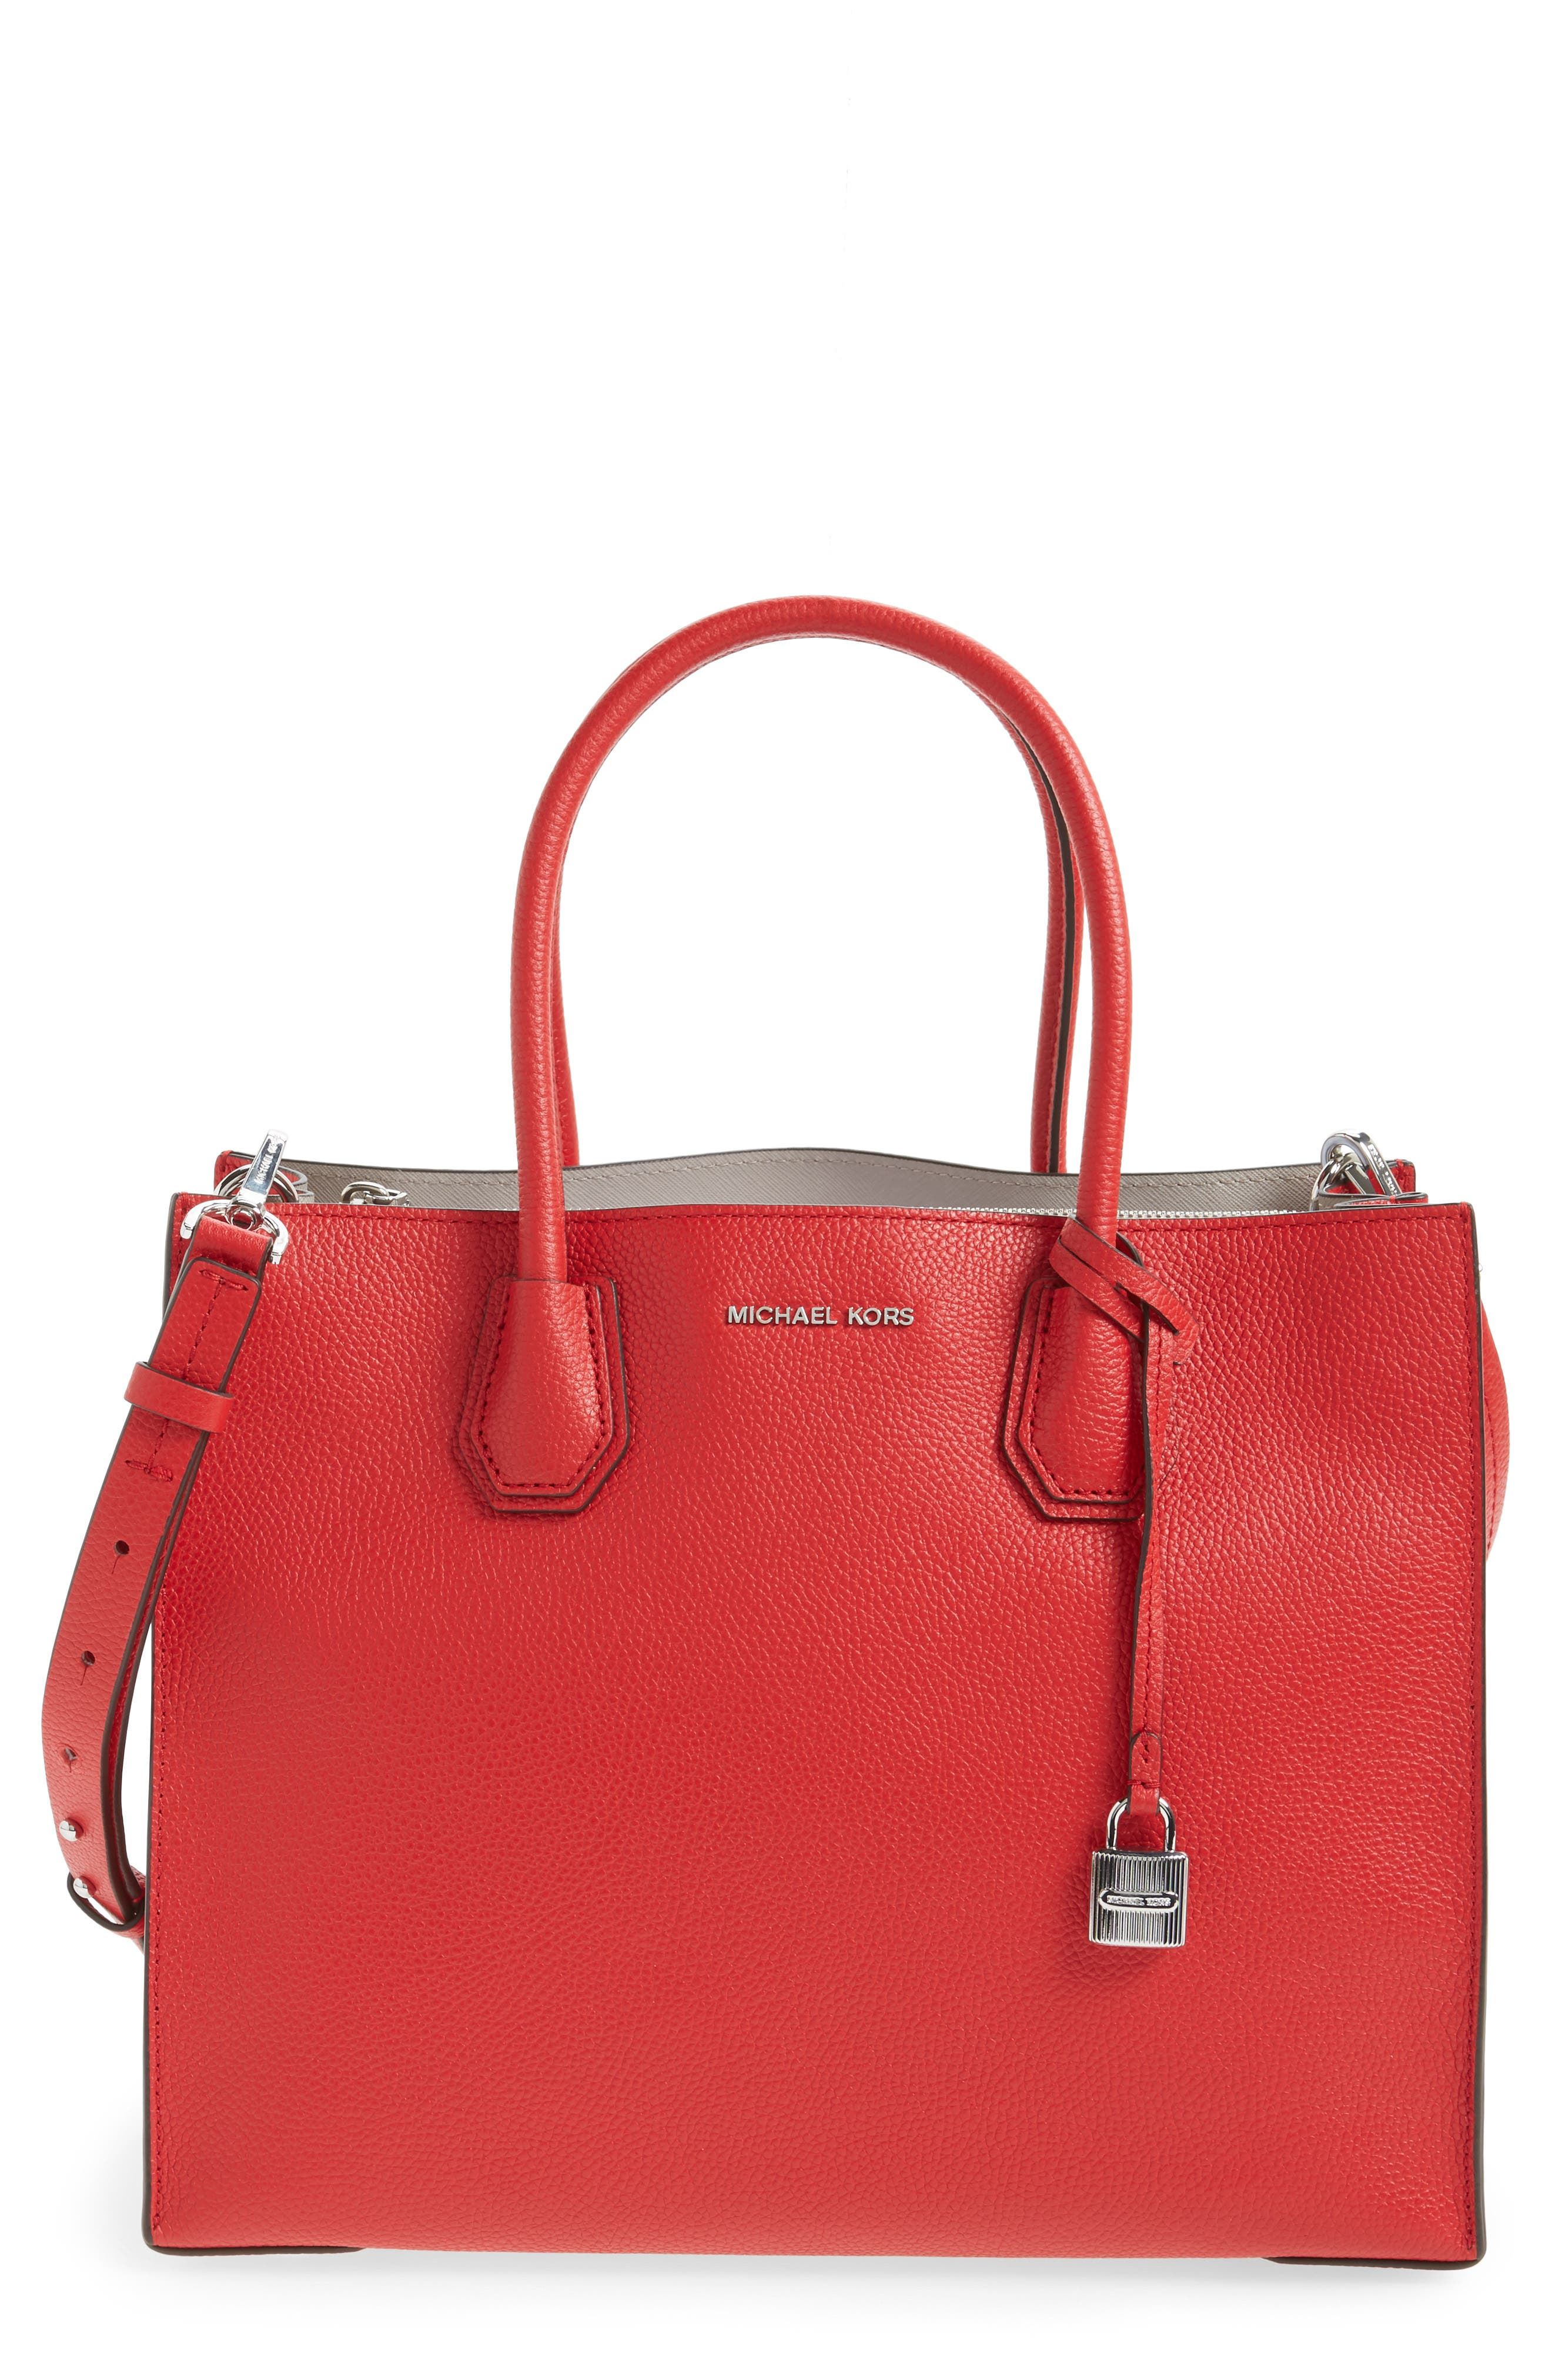 'Large Mercer' Tote,                             Main thumbnail 1, color,                             Bright Red